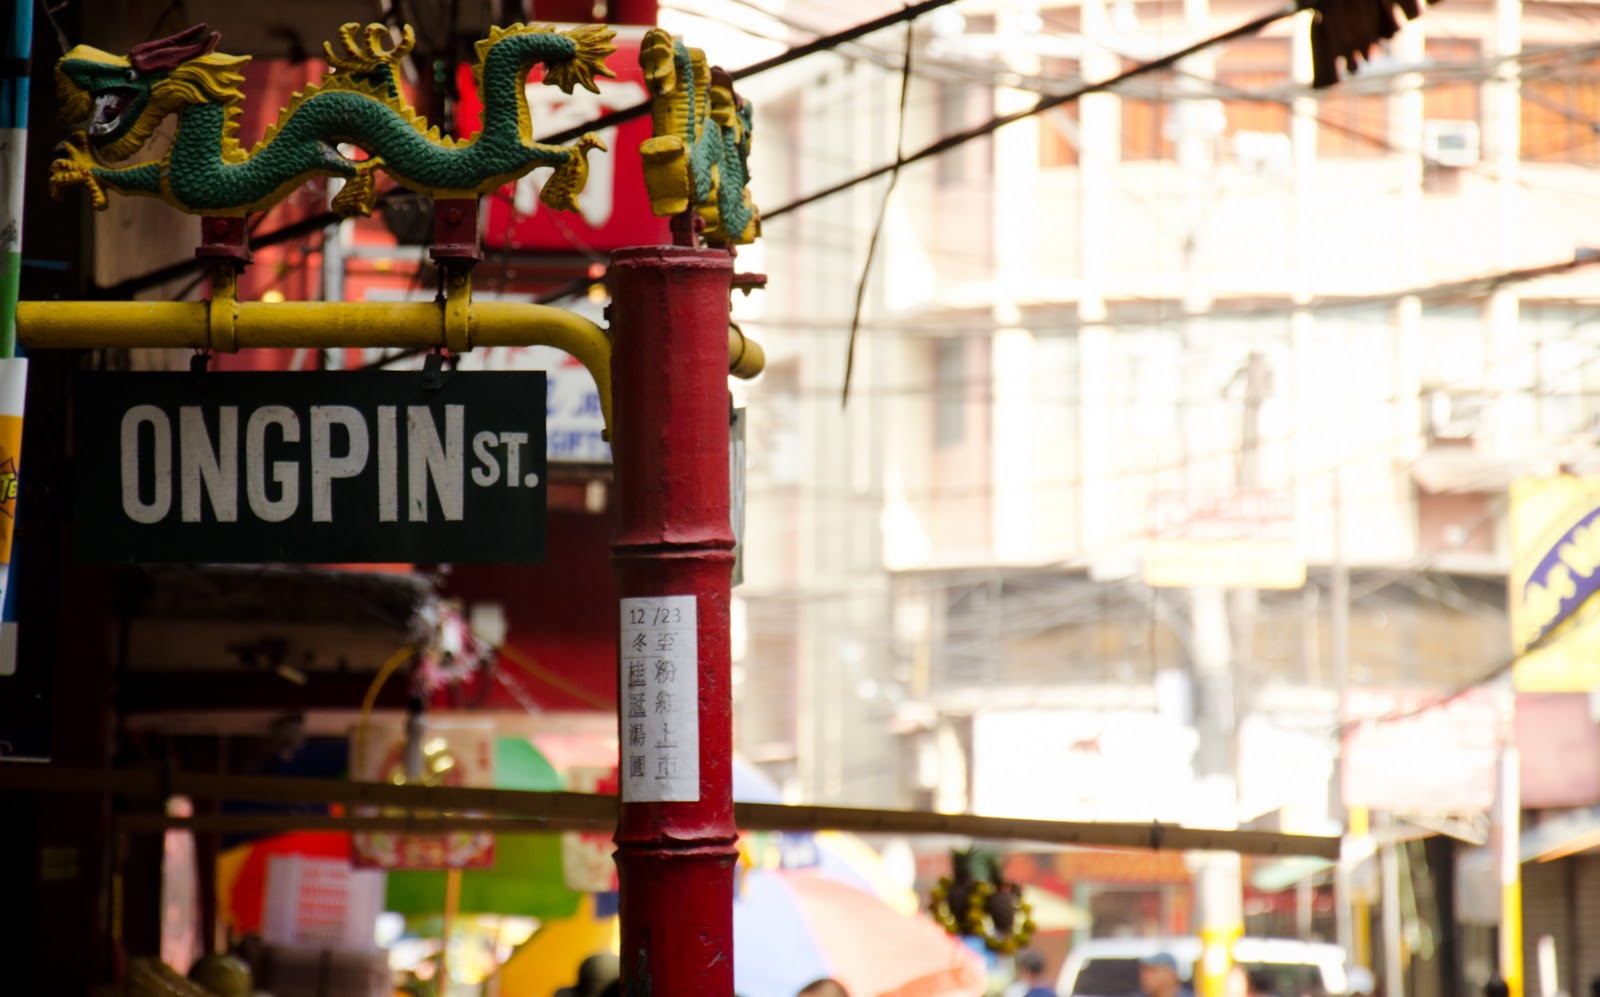 The famous Ongpin street